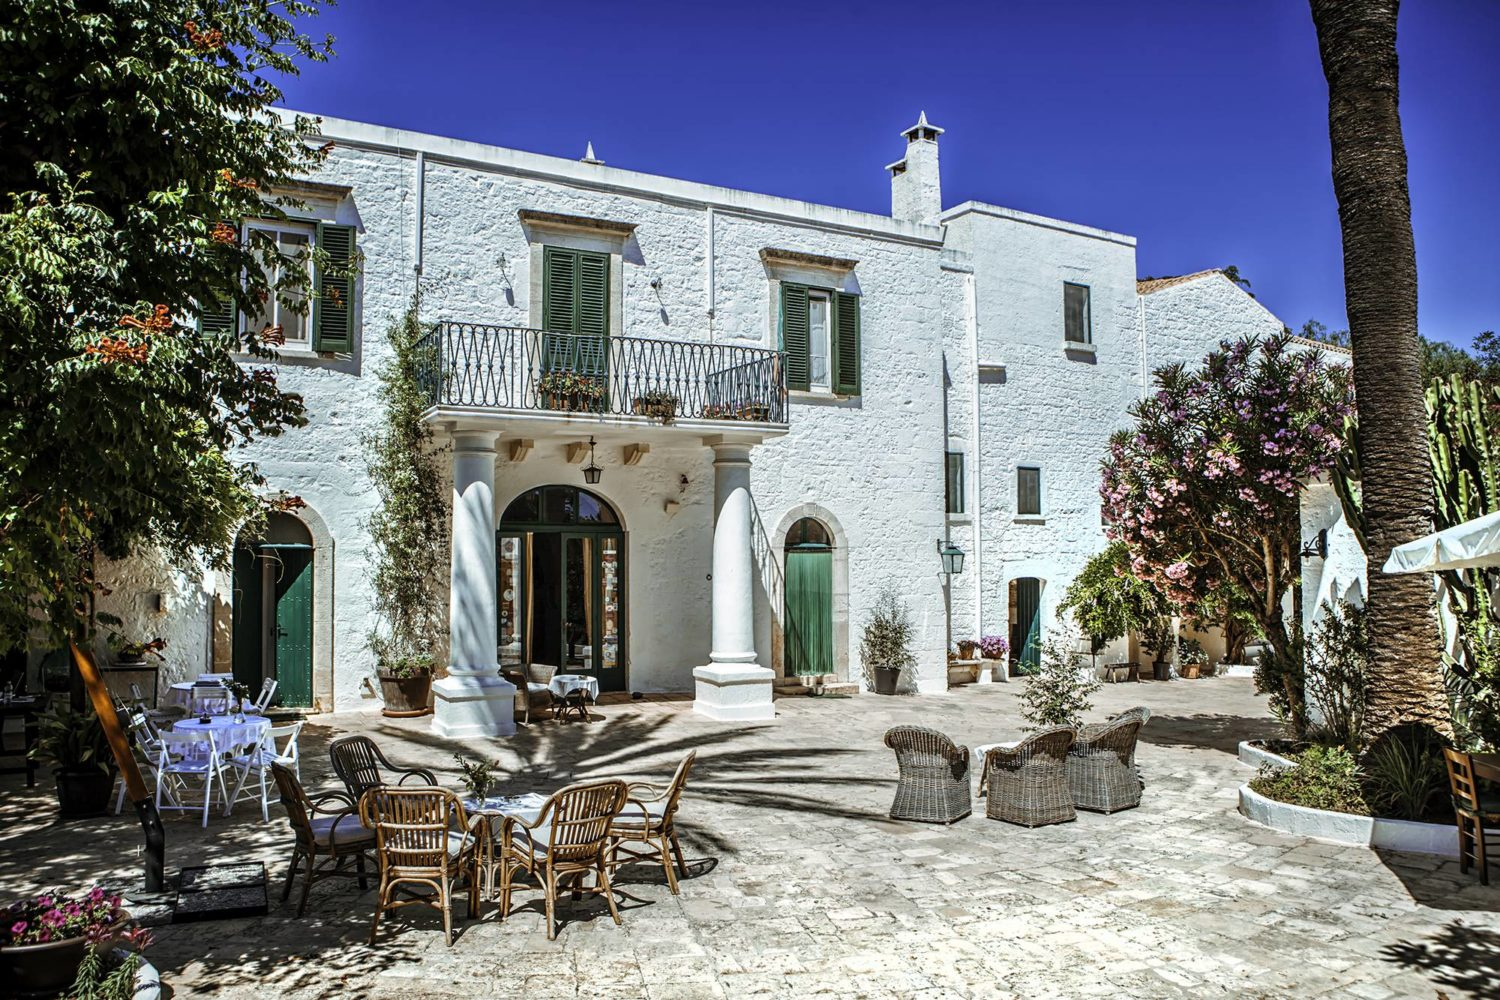 Food and wine tasting sessions in Puglia